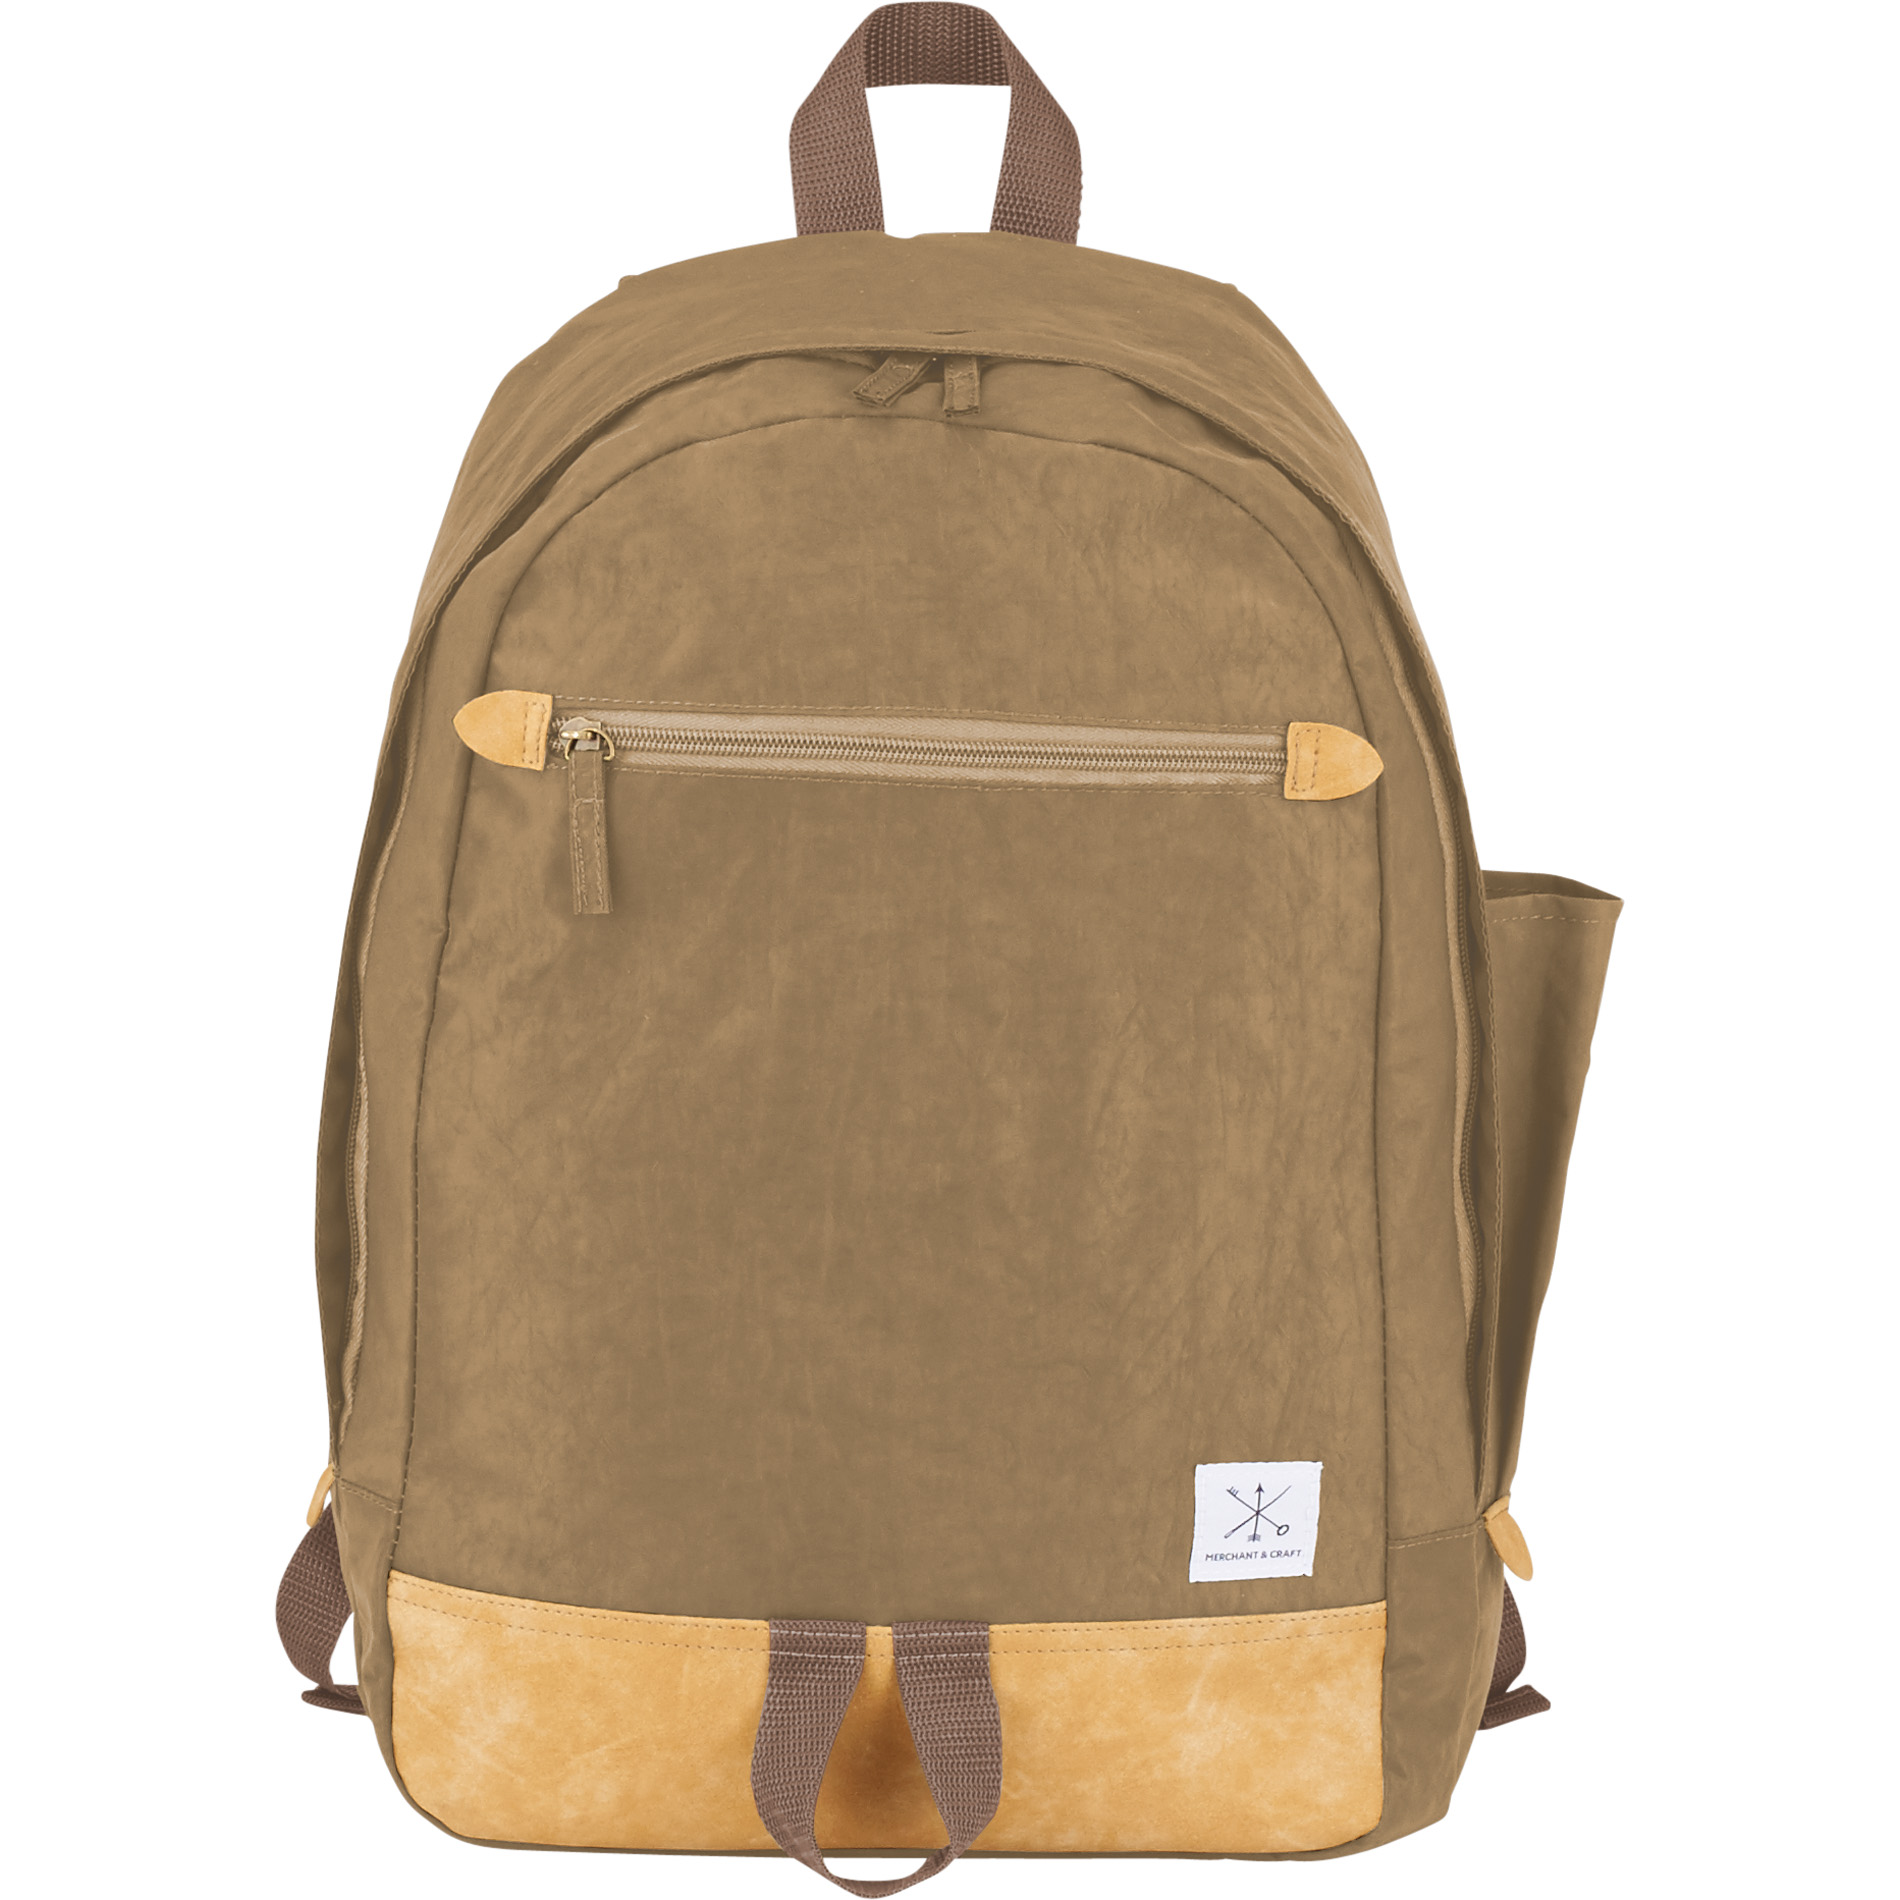 Merchant & Craft 3750-21 - Frey 15 Computer Backpack